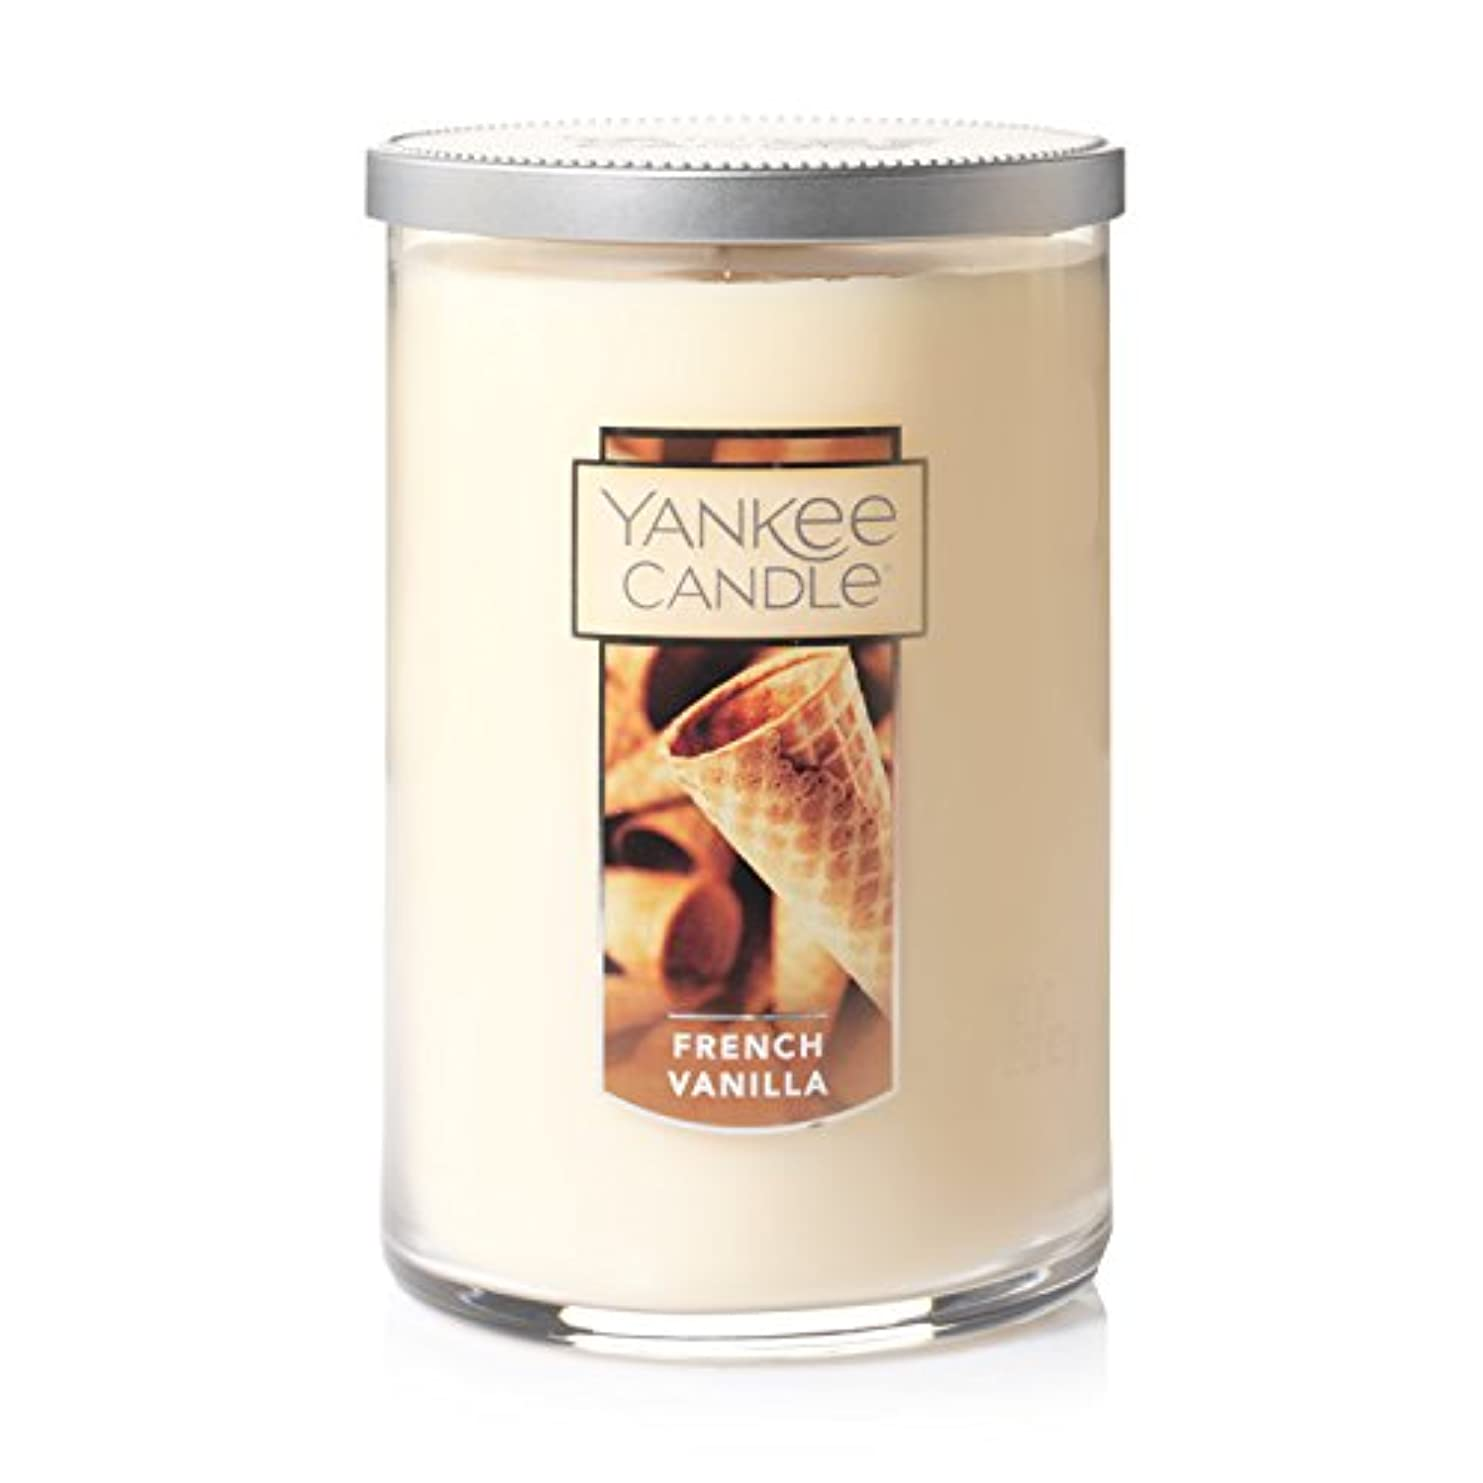 Yankee Candle Company Yankee Candle ミディアムジャーキャンドル Large 2-Wick Tumbler Candle 1125728Z